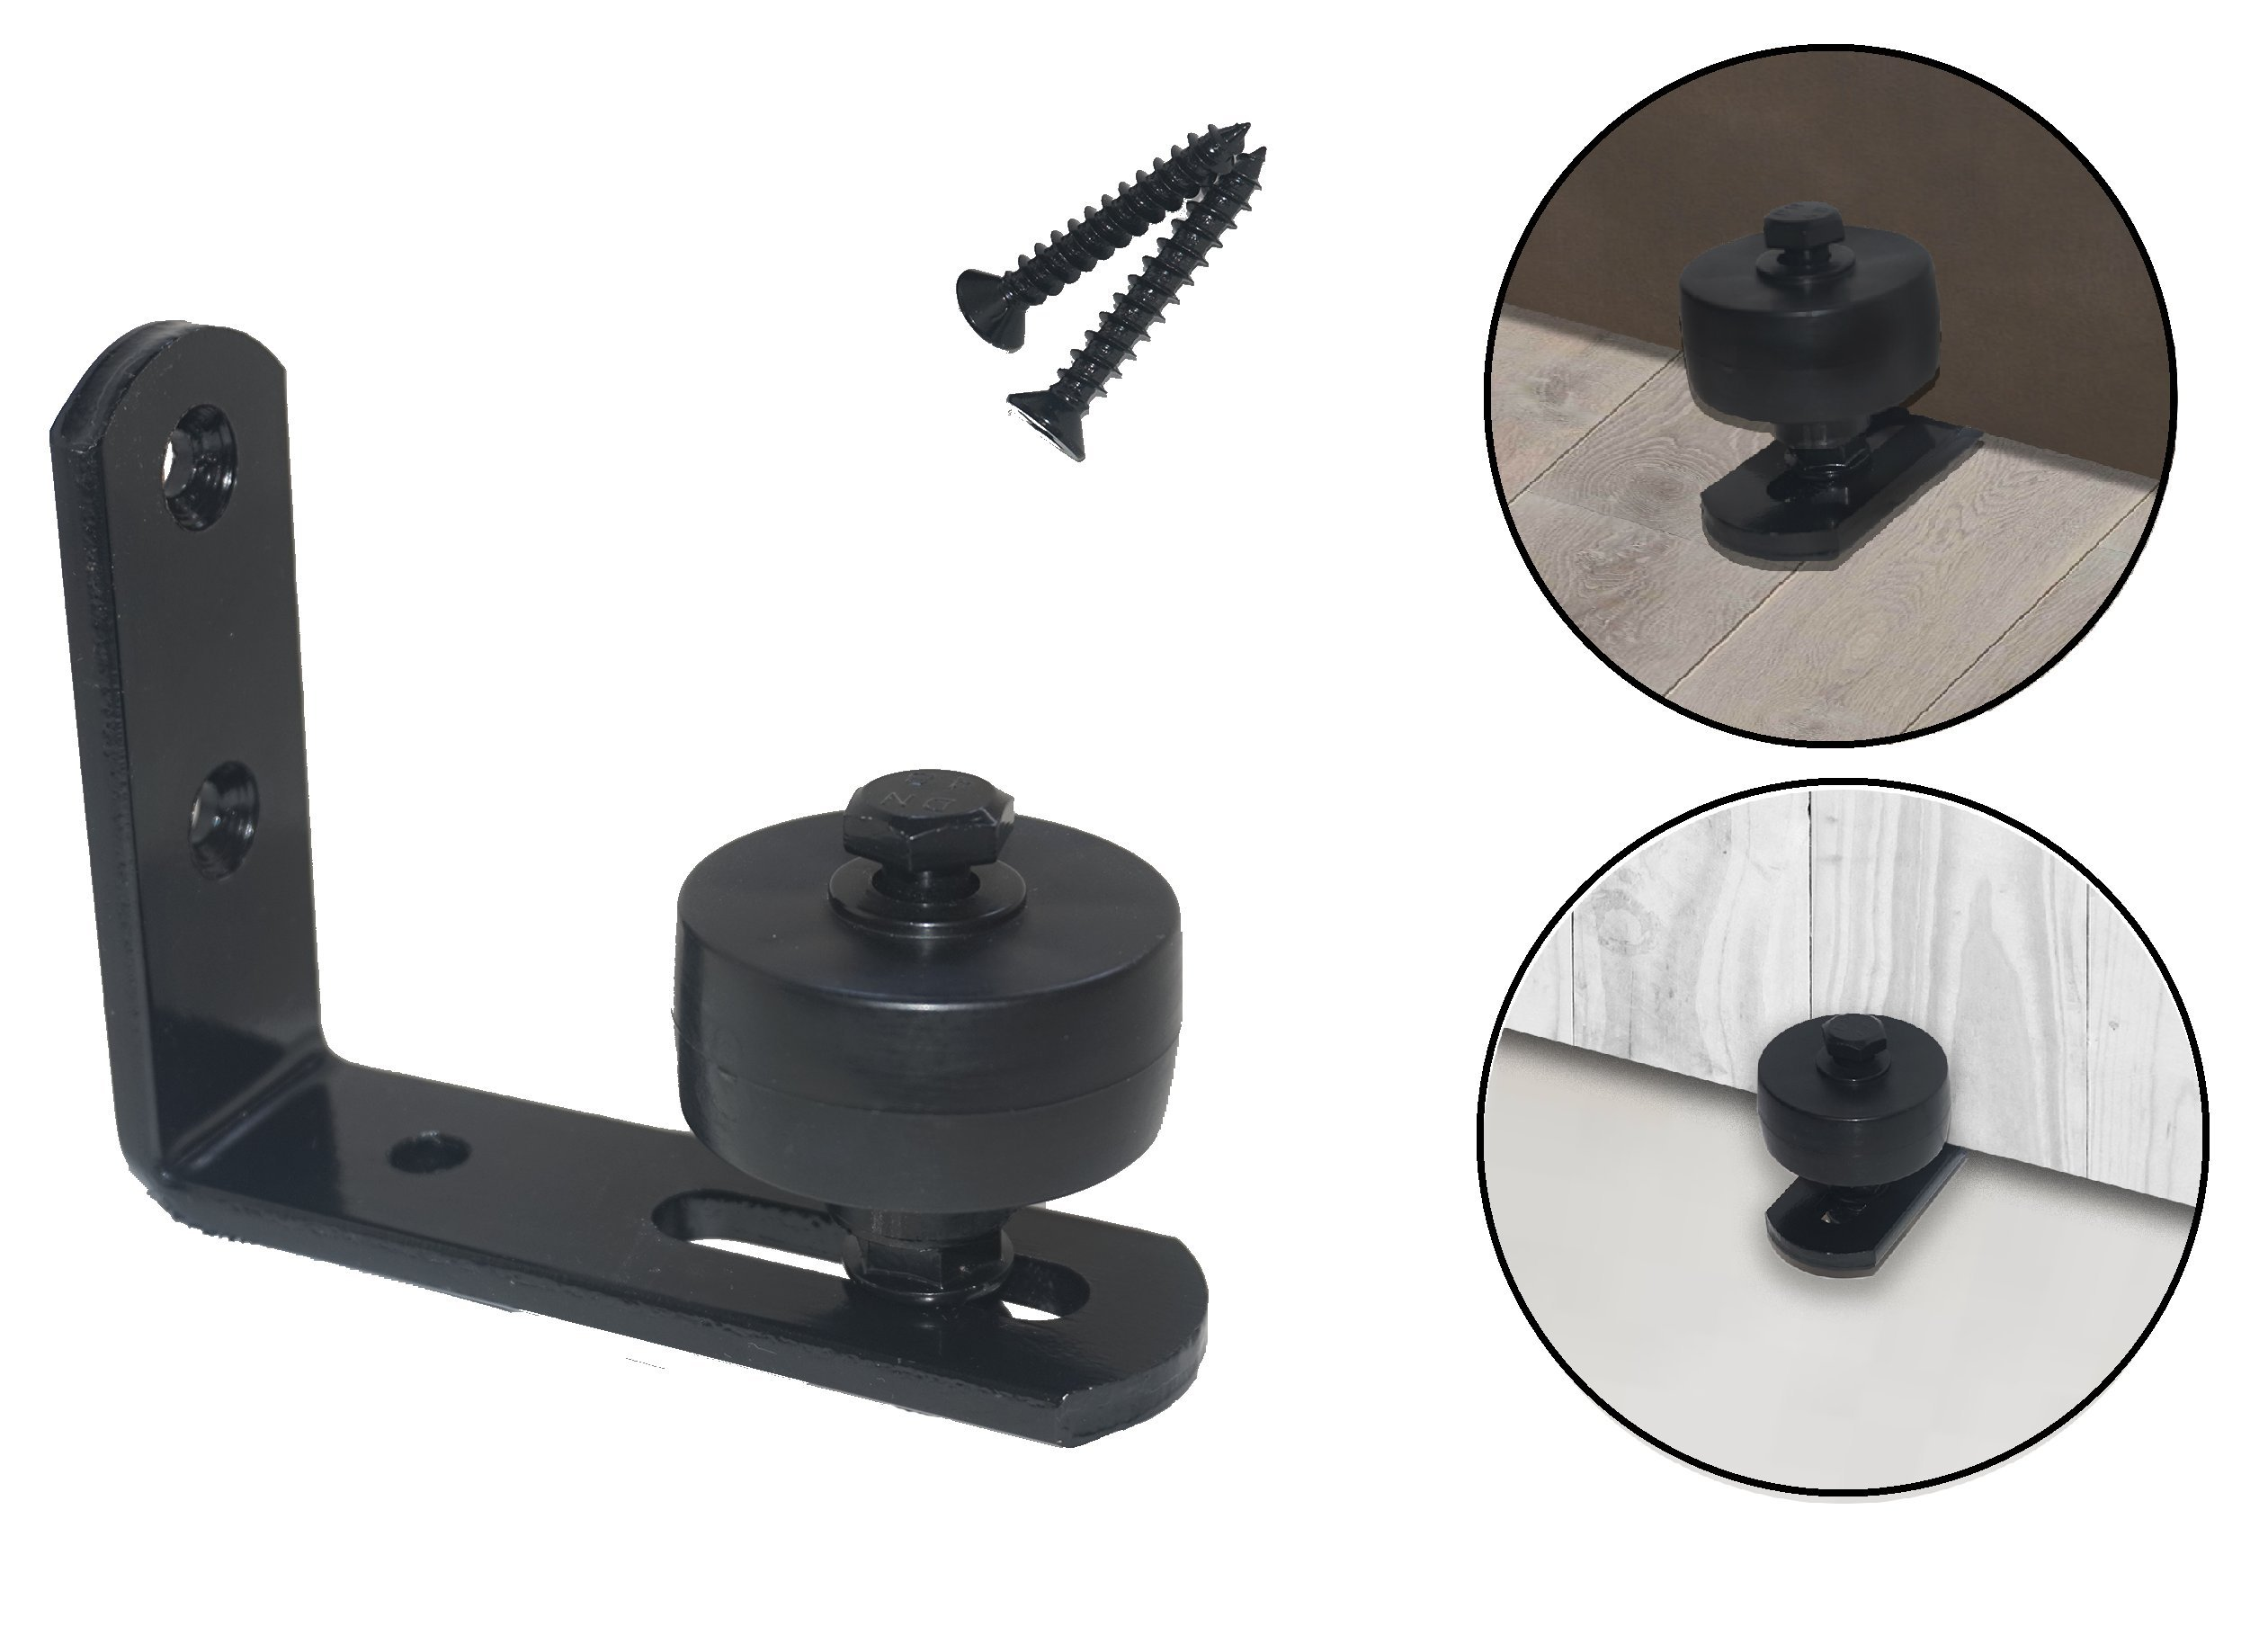 Barn Door Guide Stay Roller: Adjustable Bottom Wall Mount for Smooth and Quiet Sliding, with Full Installation ScrewsKit, Black and Discreet, Strong Steel, No Door Or Floor ScratchingAnd Damage